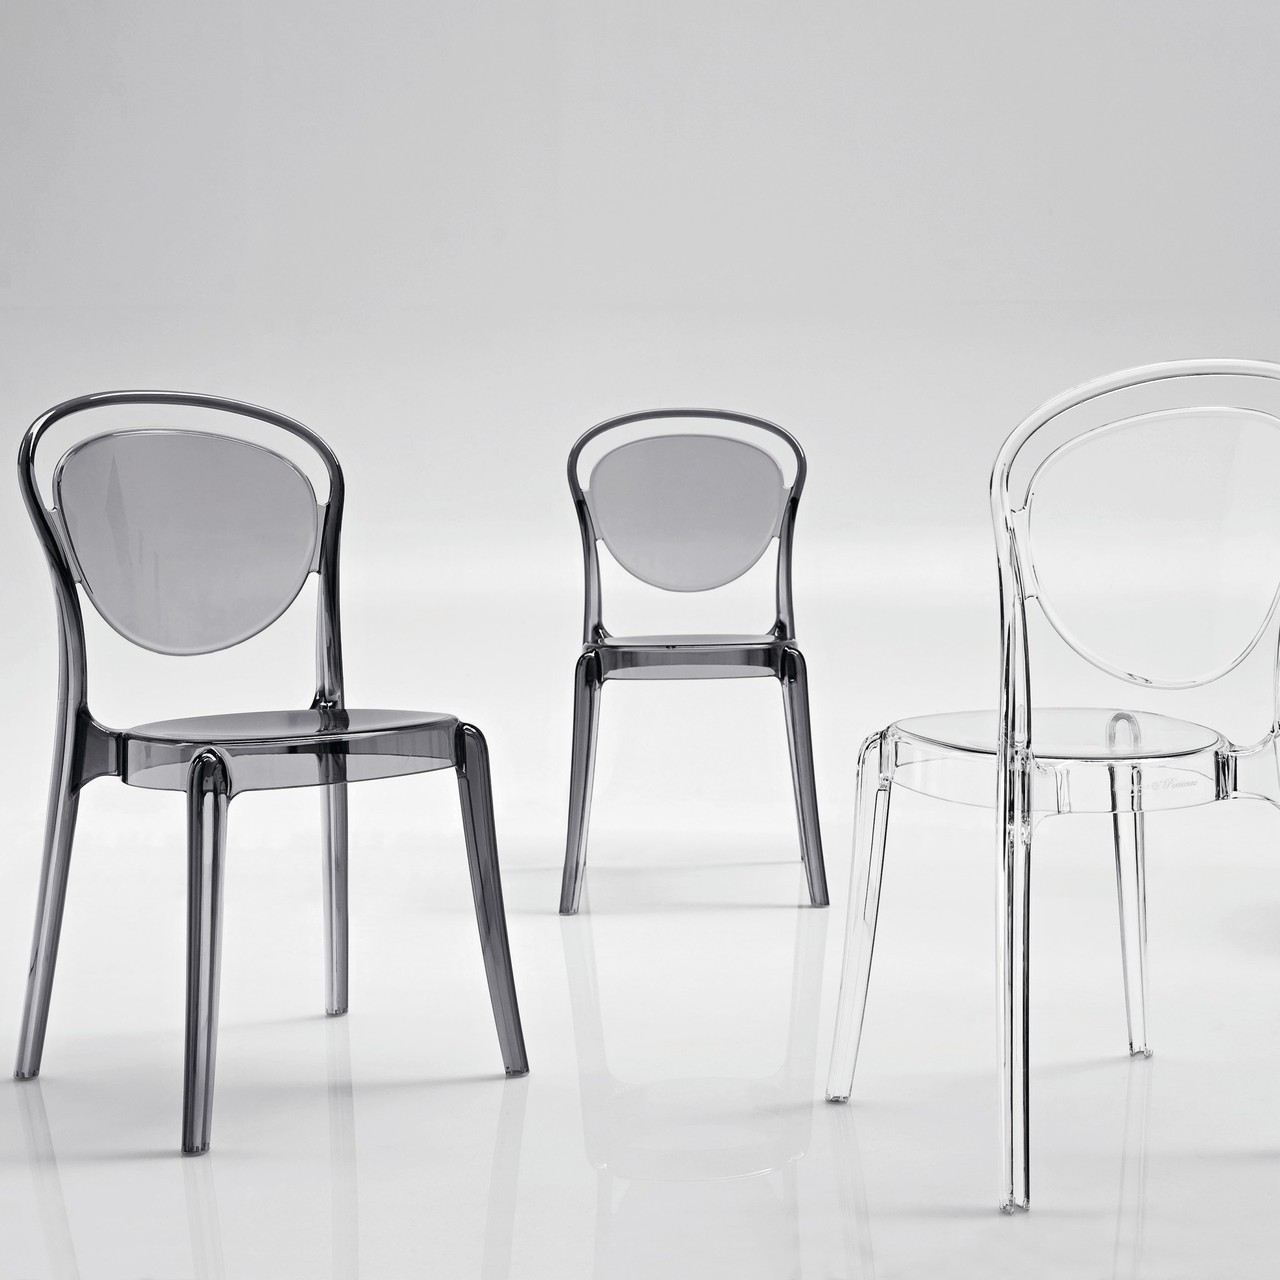 Calligaris Chairs Calligaris Parisienne Chair Calligaris Dining Chairs